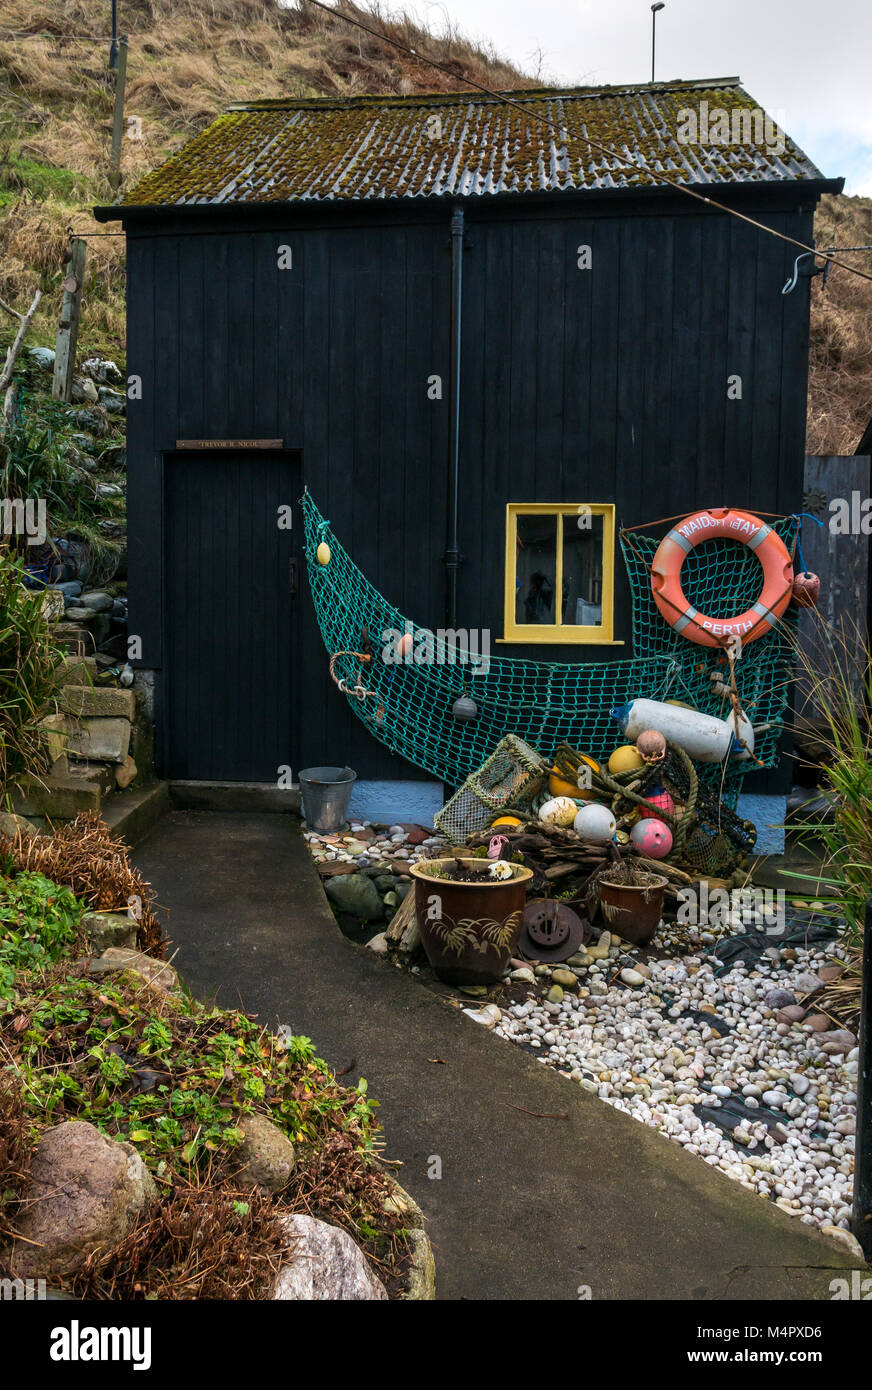 small-net-store-or-shed-with-lifebelt-an